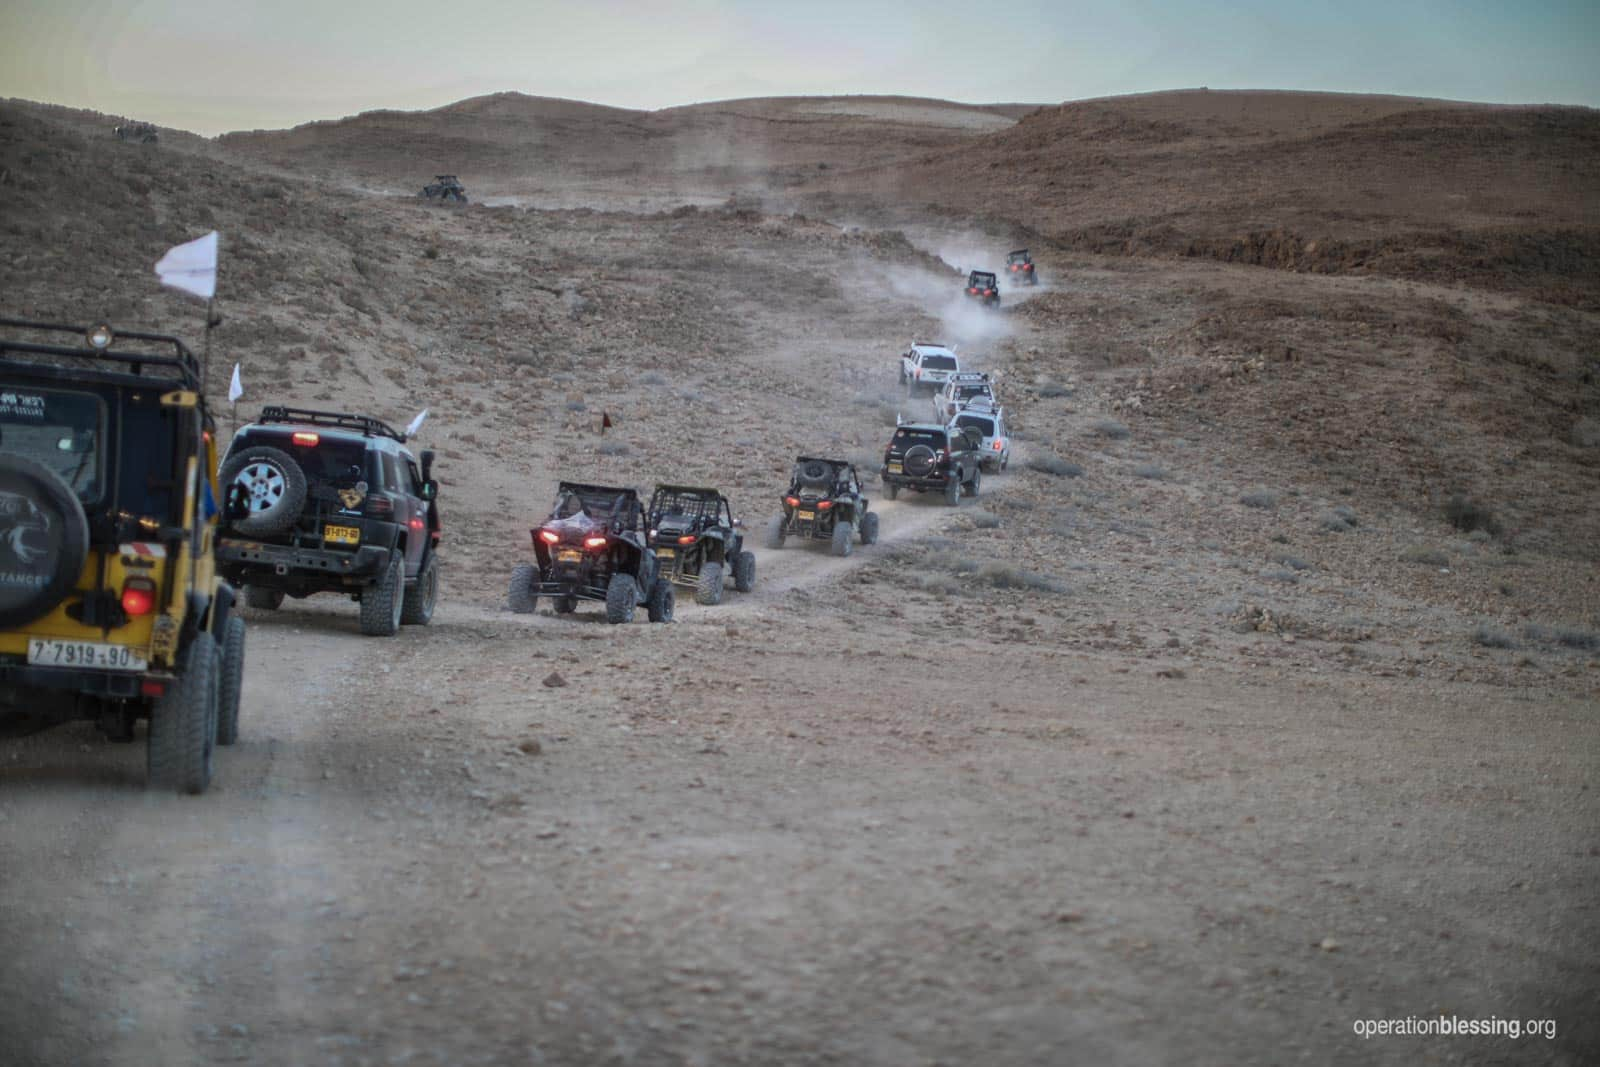 The convoy travels the desert with relief.